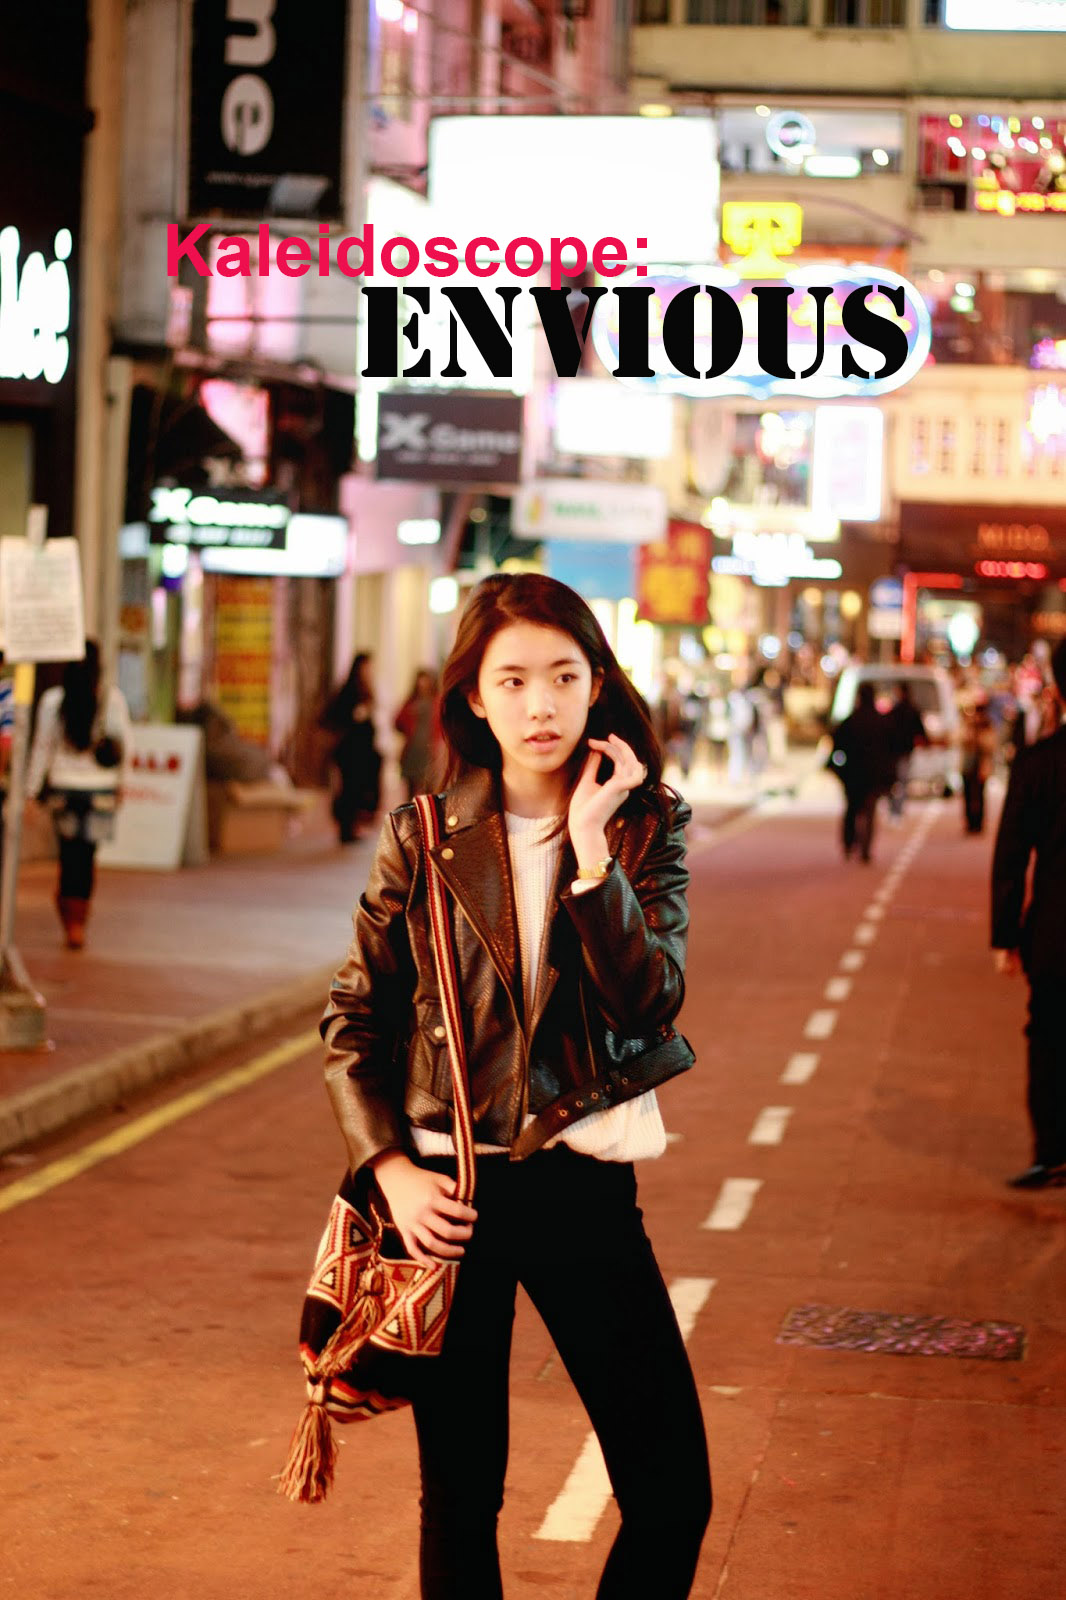 Kaleidoscope Envious SAY KOREAN FANFICTION